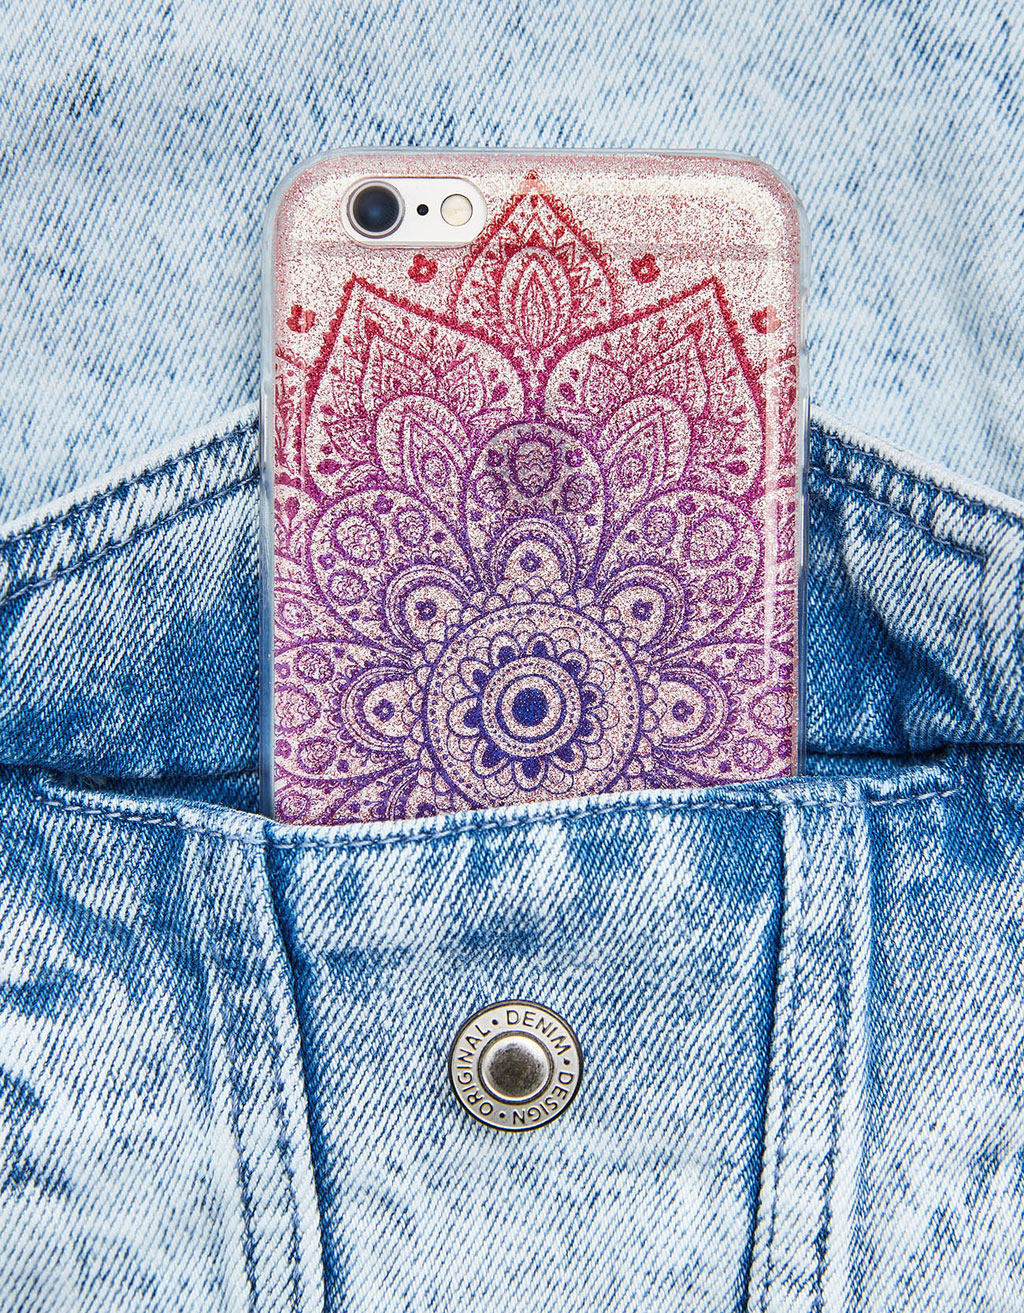 iPhone 6/6s case with glitter and raised pattern